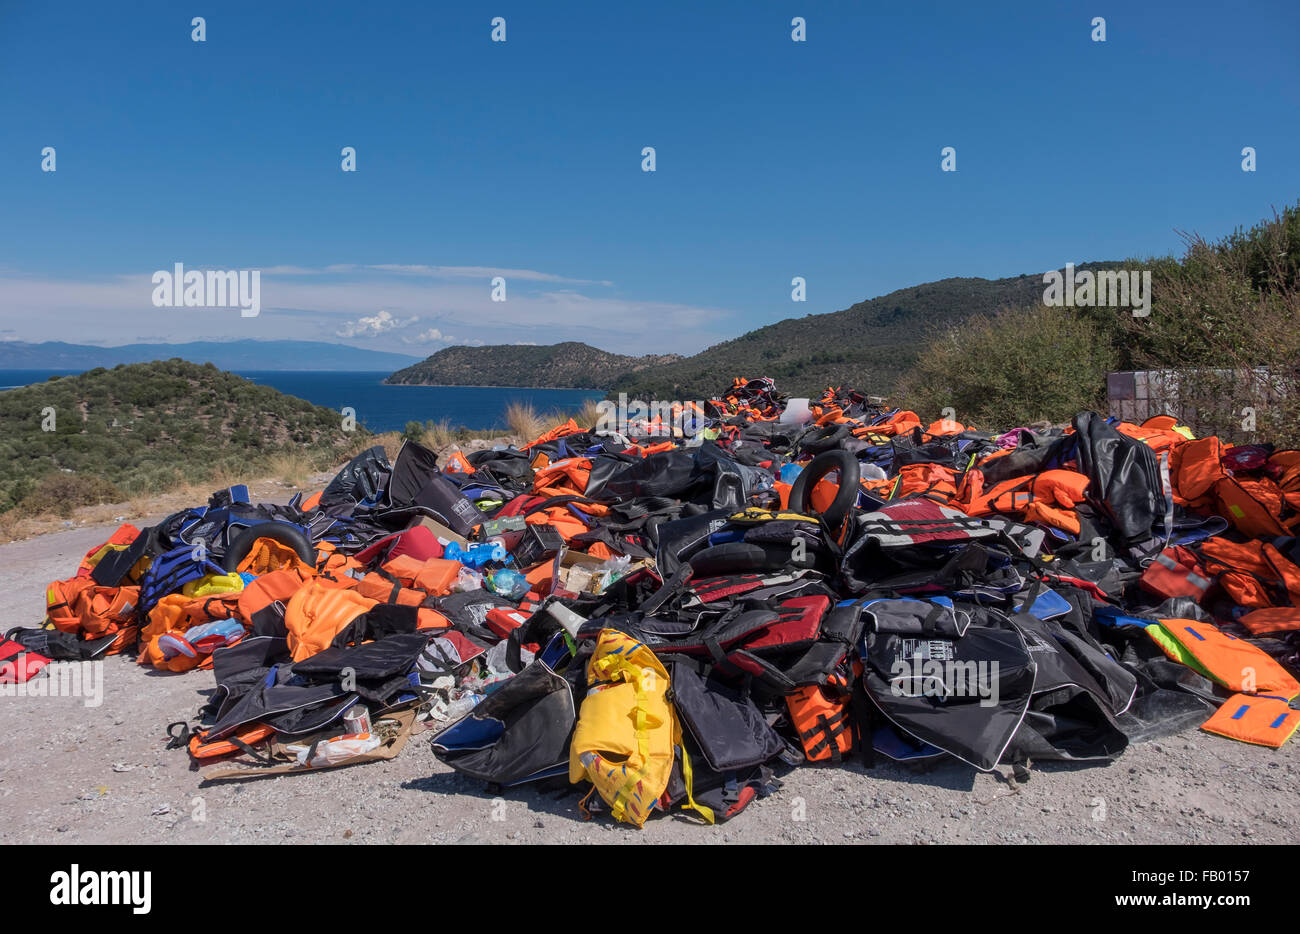 A mountain of life vests left behind by refugees crossing into the Greek island of Lesvos from Turkey (in the distance). - Stock Image